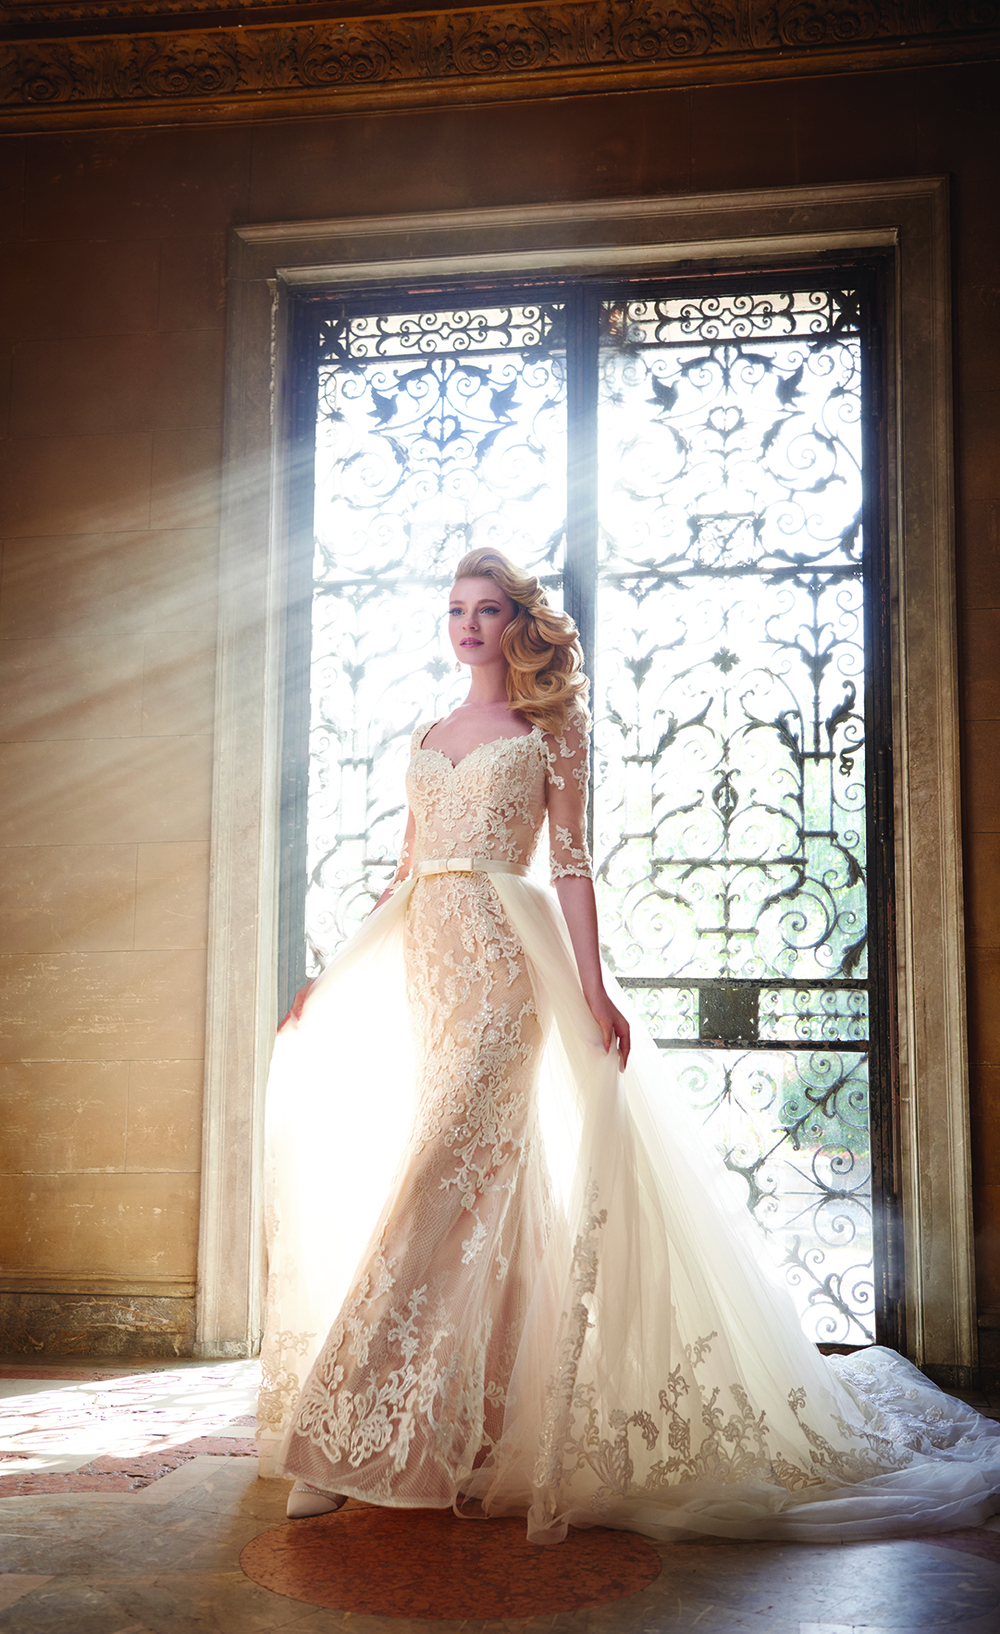 Matthew Christopher 2016 Collection at Little White Dress Bridal Shop in Denver, Colorado